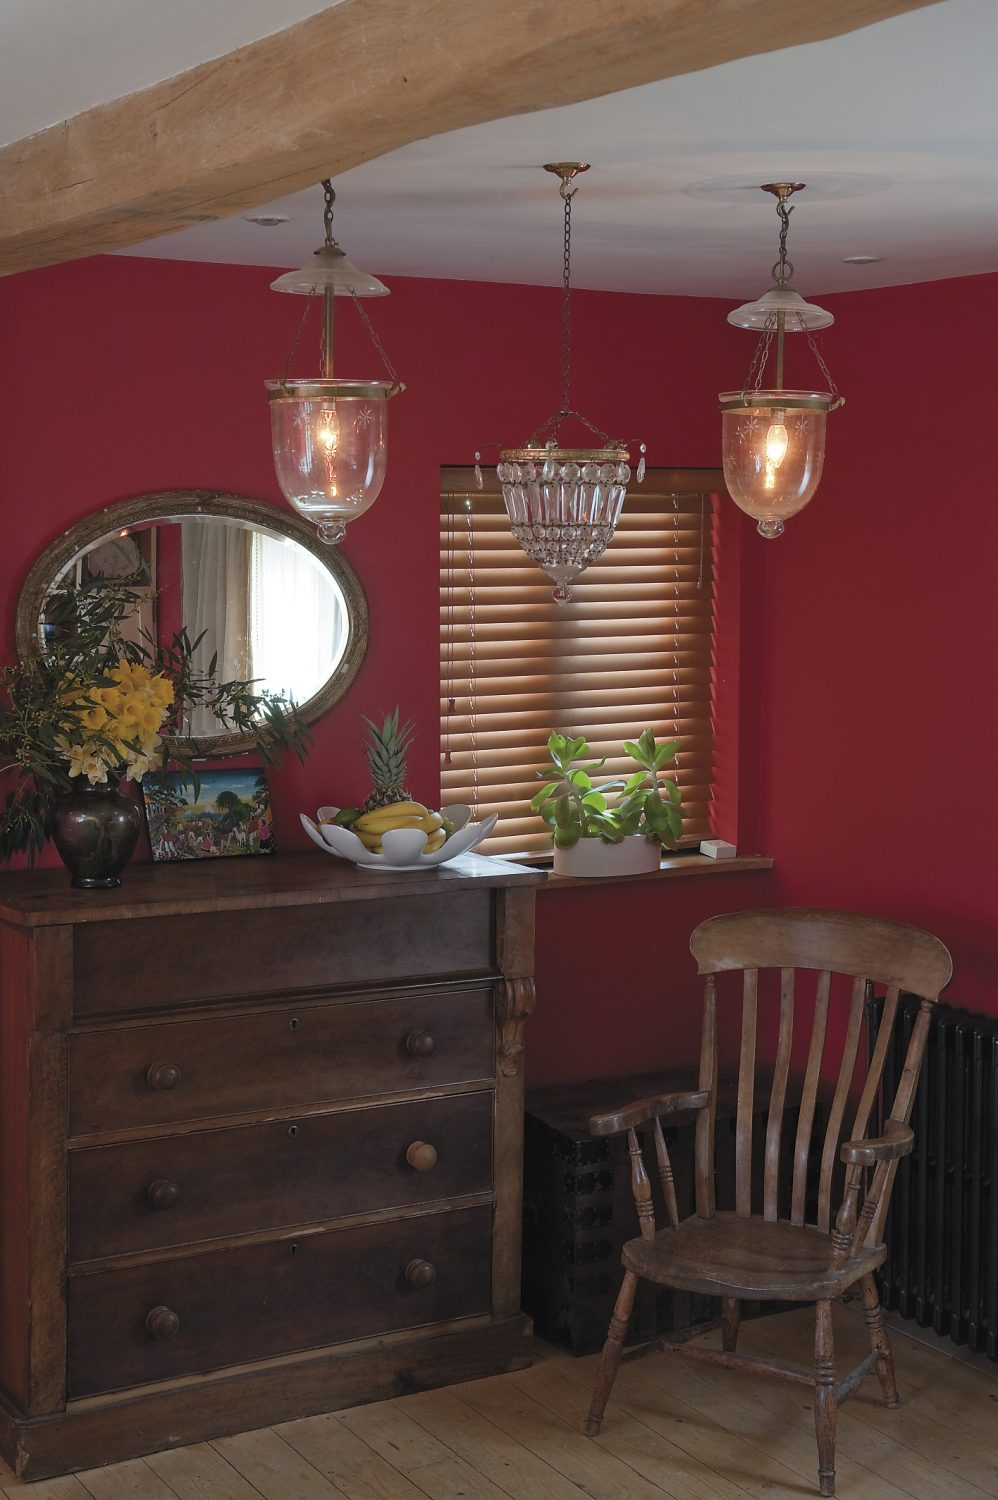 the kitchen in the cottage are both painted a vibrant cherry red